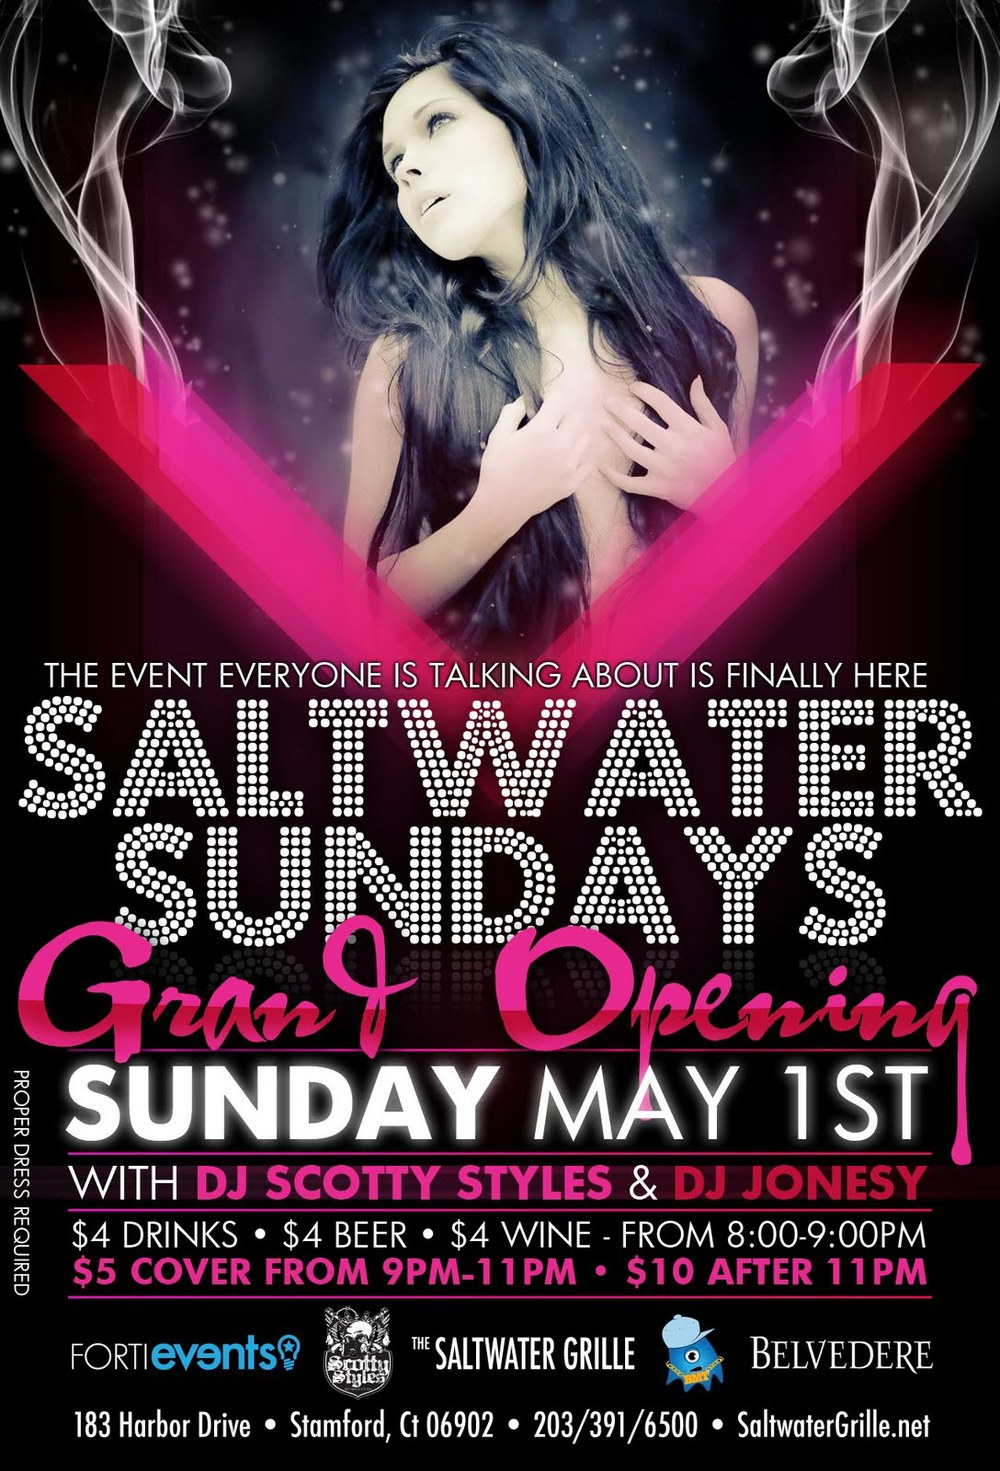 Sunday May 1st ill be rockin the Grand Opening of Saltwater Grille in Stamford, CT for the Summer. Summer is here kids!!! $5 cover 9pm-11pm, $10 cover AFTER 11pm. Big Shout to my bro   @DJSCOTTYSTYLES   ... follow him on twitter.